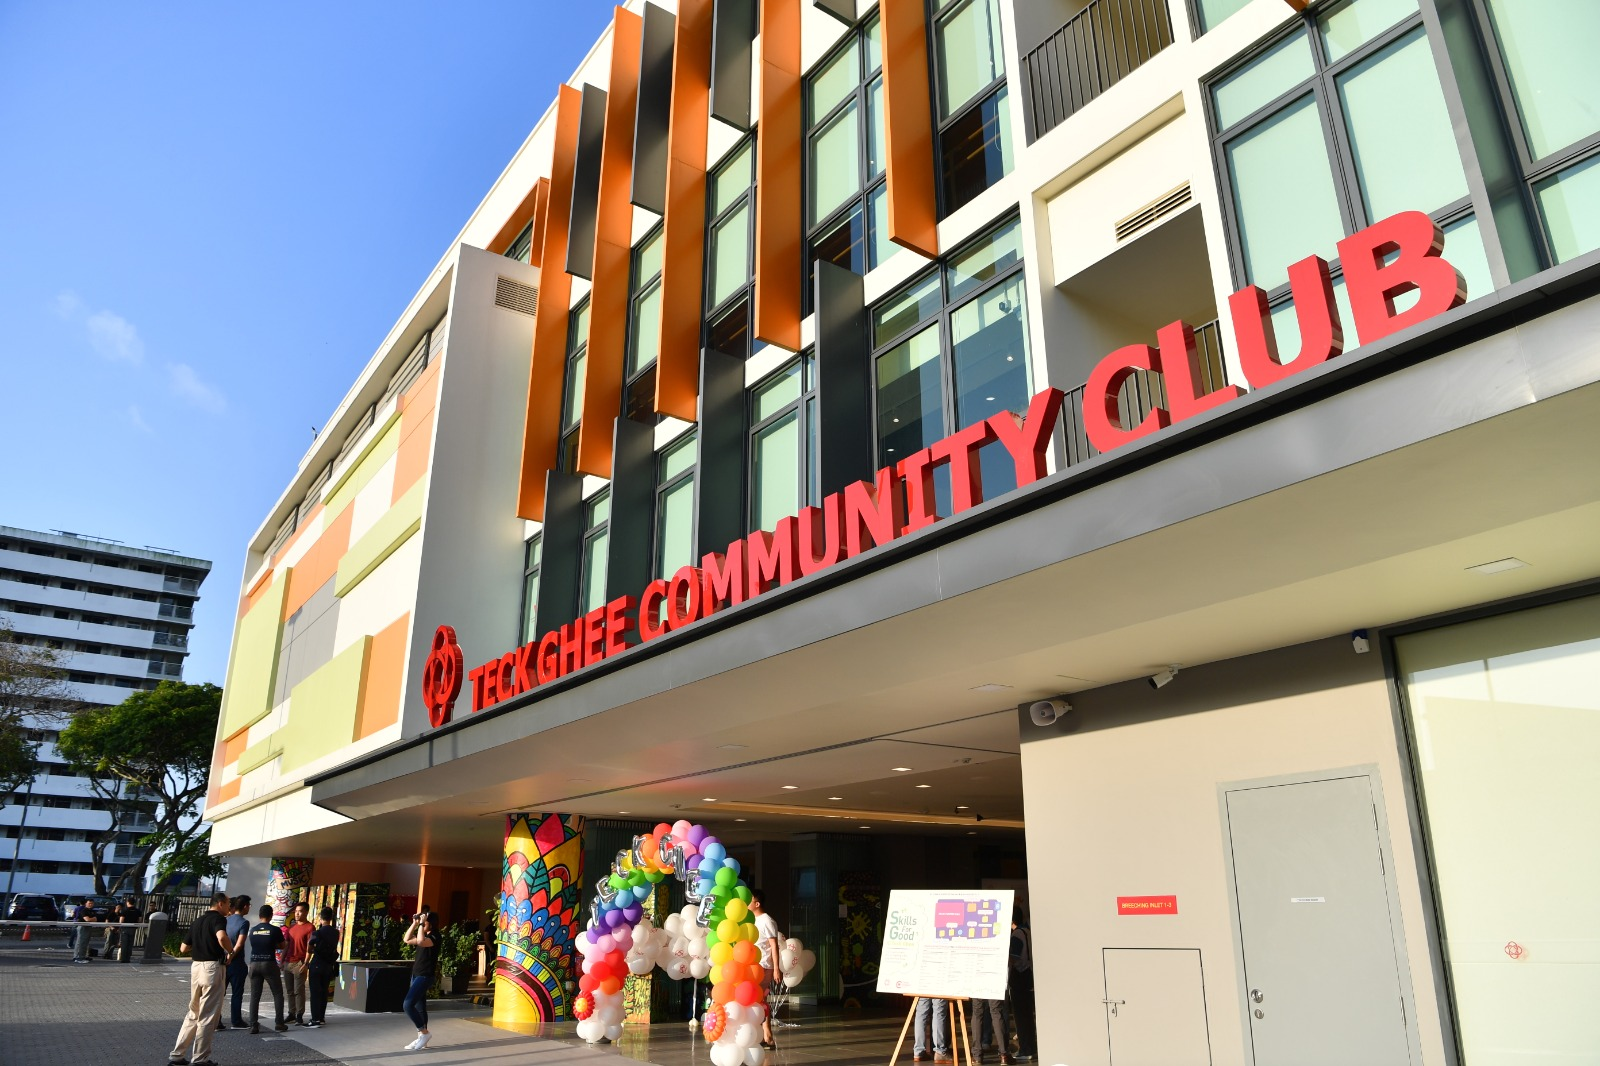 Upgraded Teck Ghee CC offers residents new facilities for community events